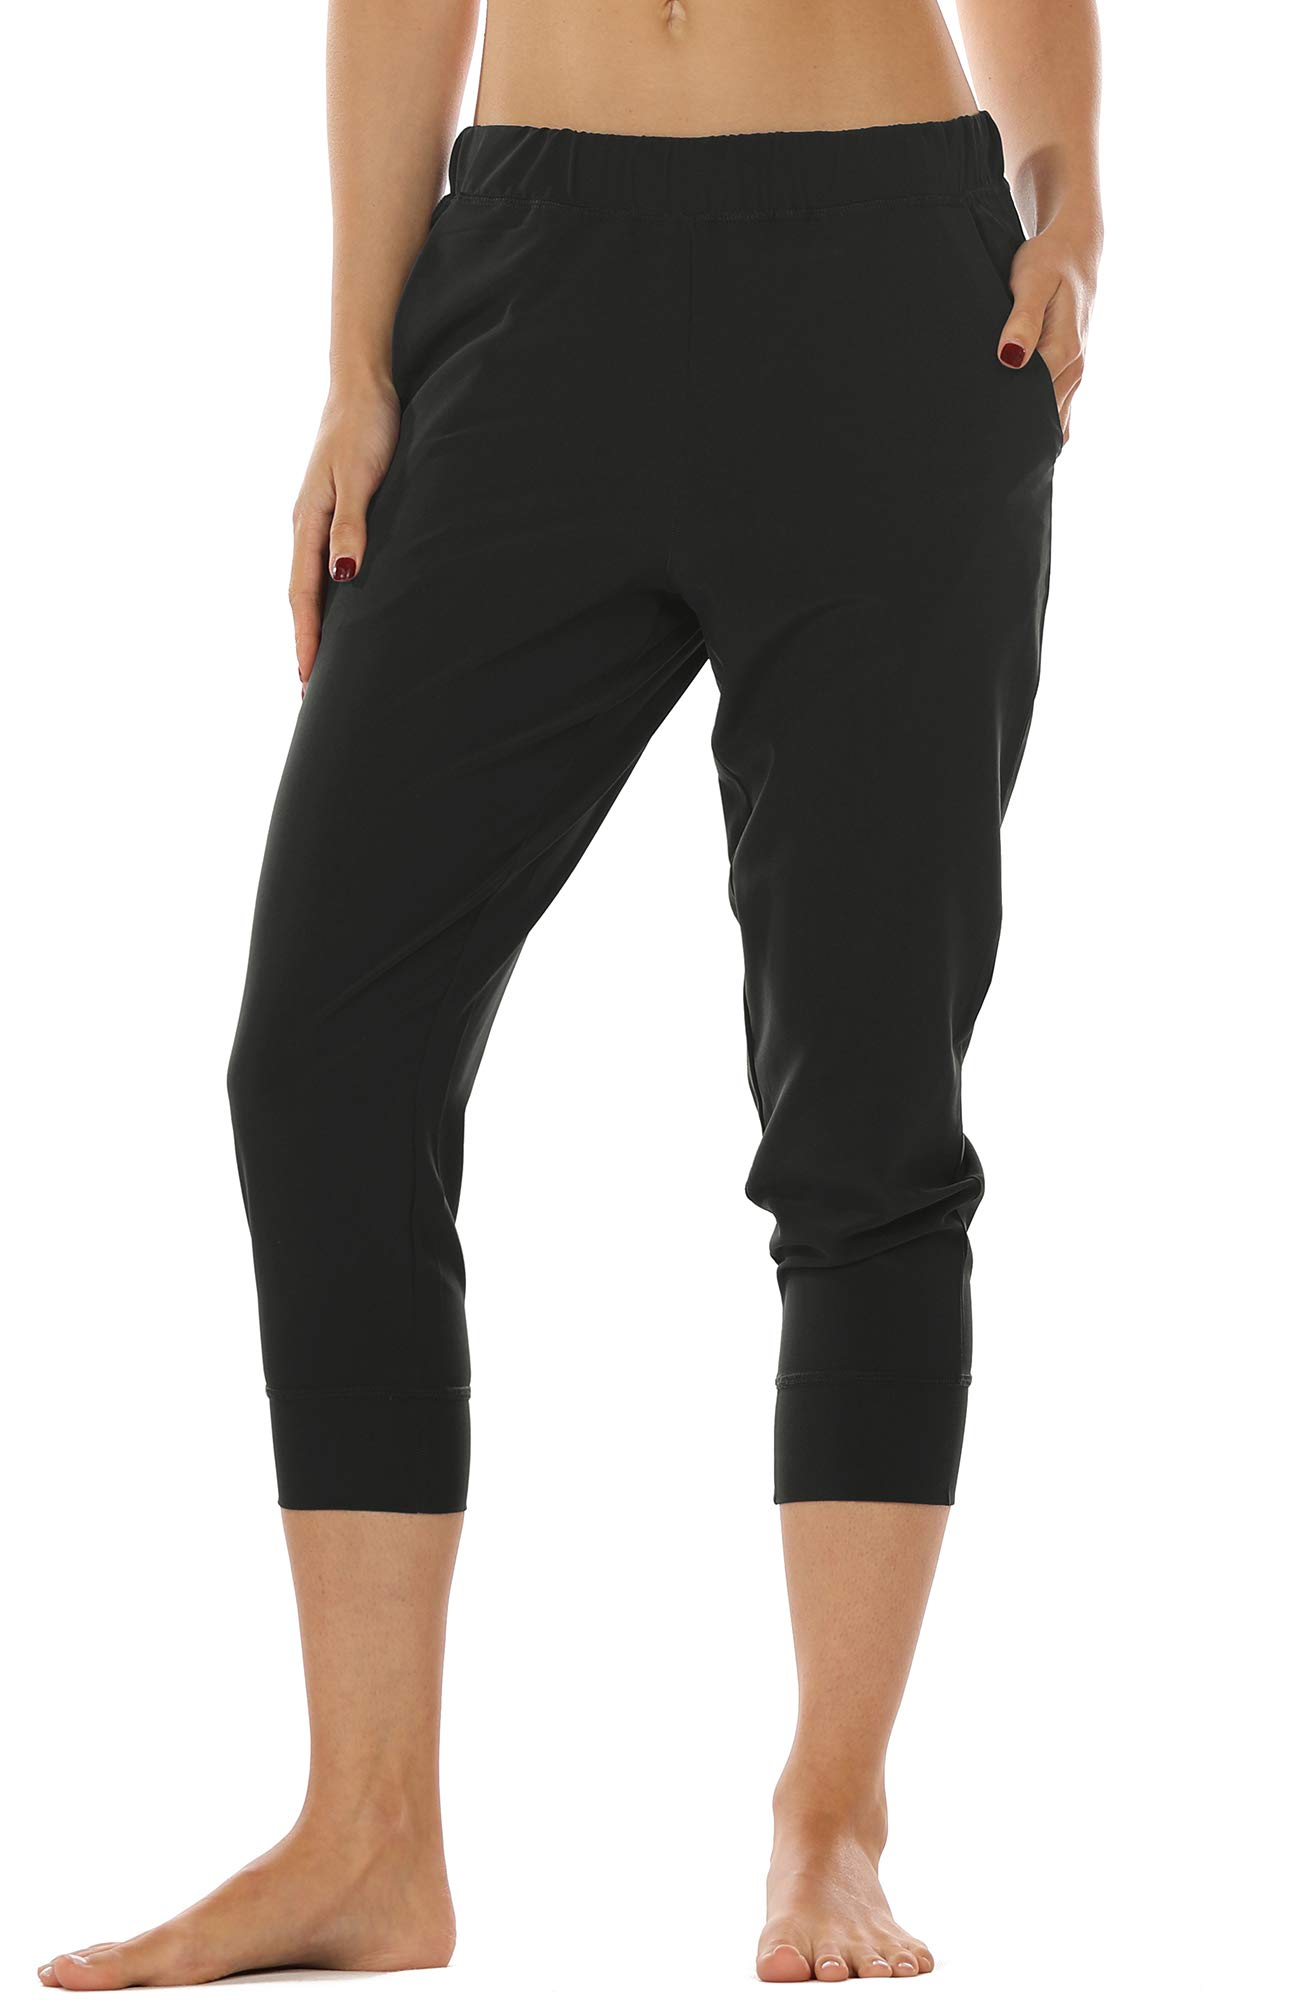 icyzone Lightweight Joggers Pants for Women - Athletic Workout Outdoor Lounge Woven Capri Pants with Pockets